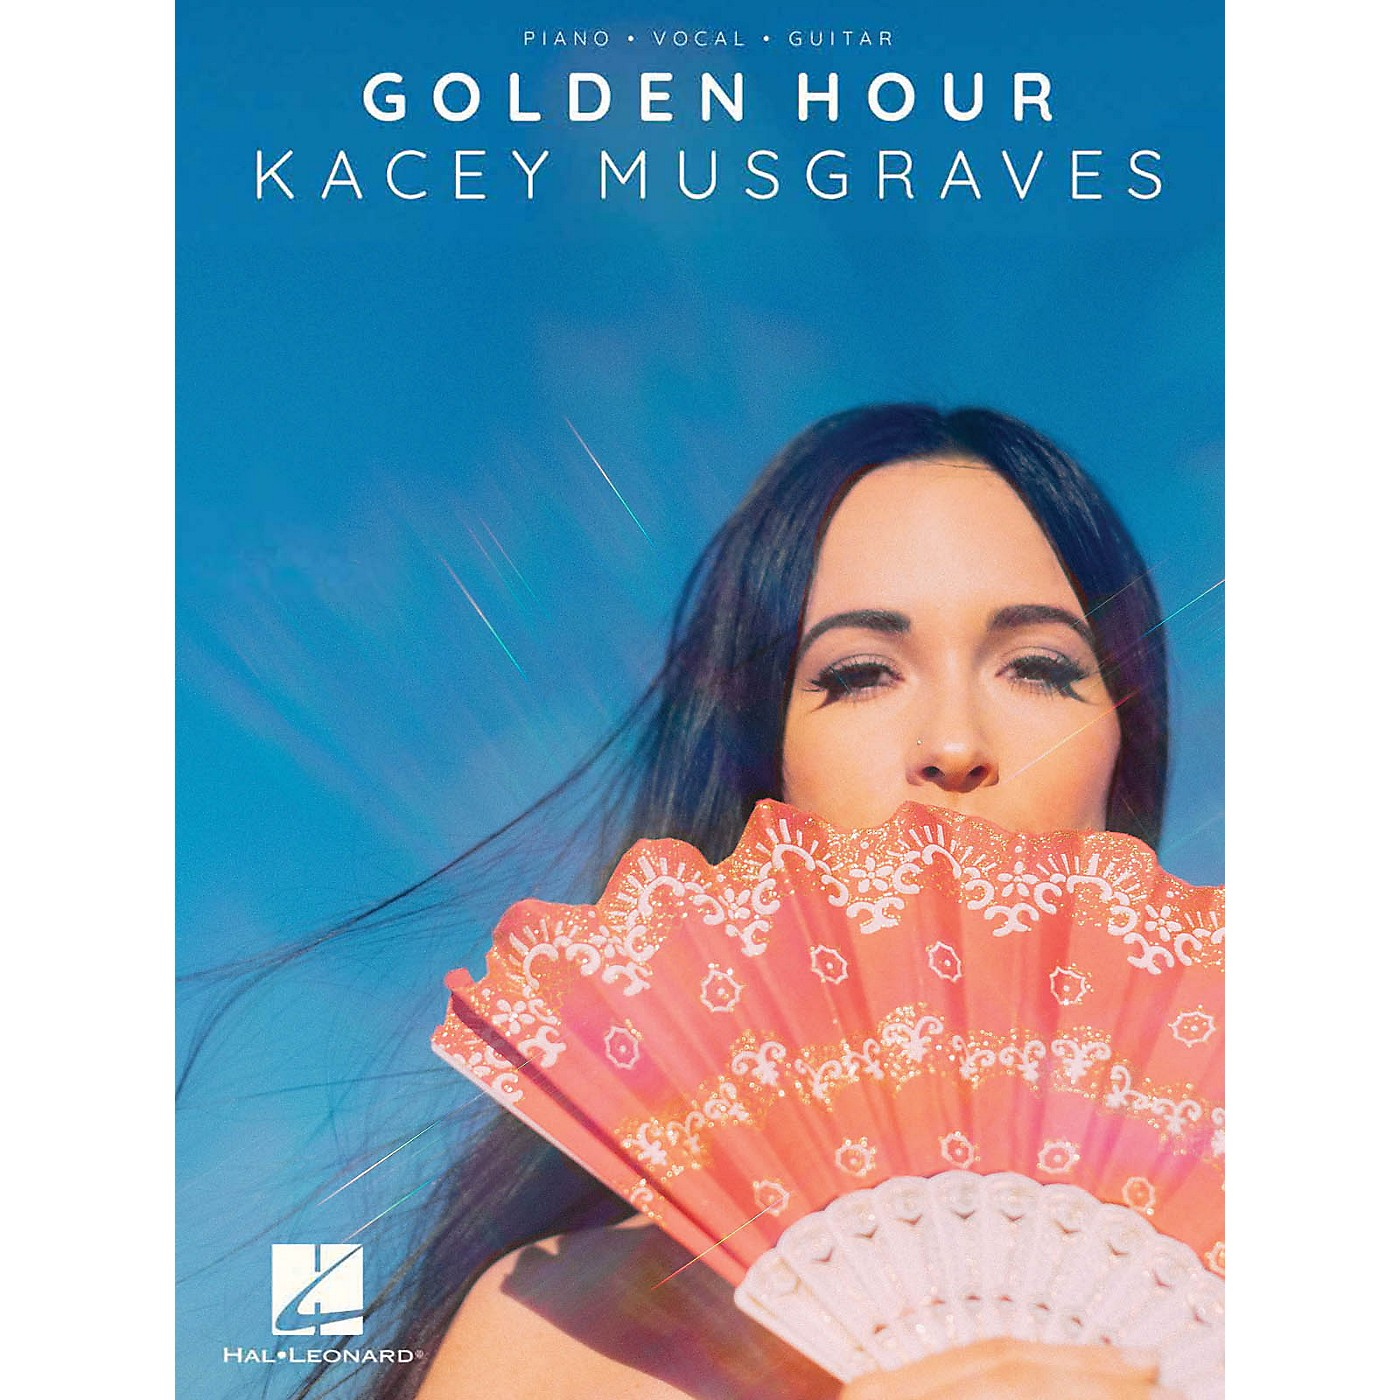 Hal Leonard Kacey Musgraves - Golden Hour Piano/Vocal/Guitar Songbook thumbnail